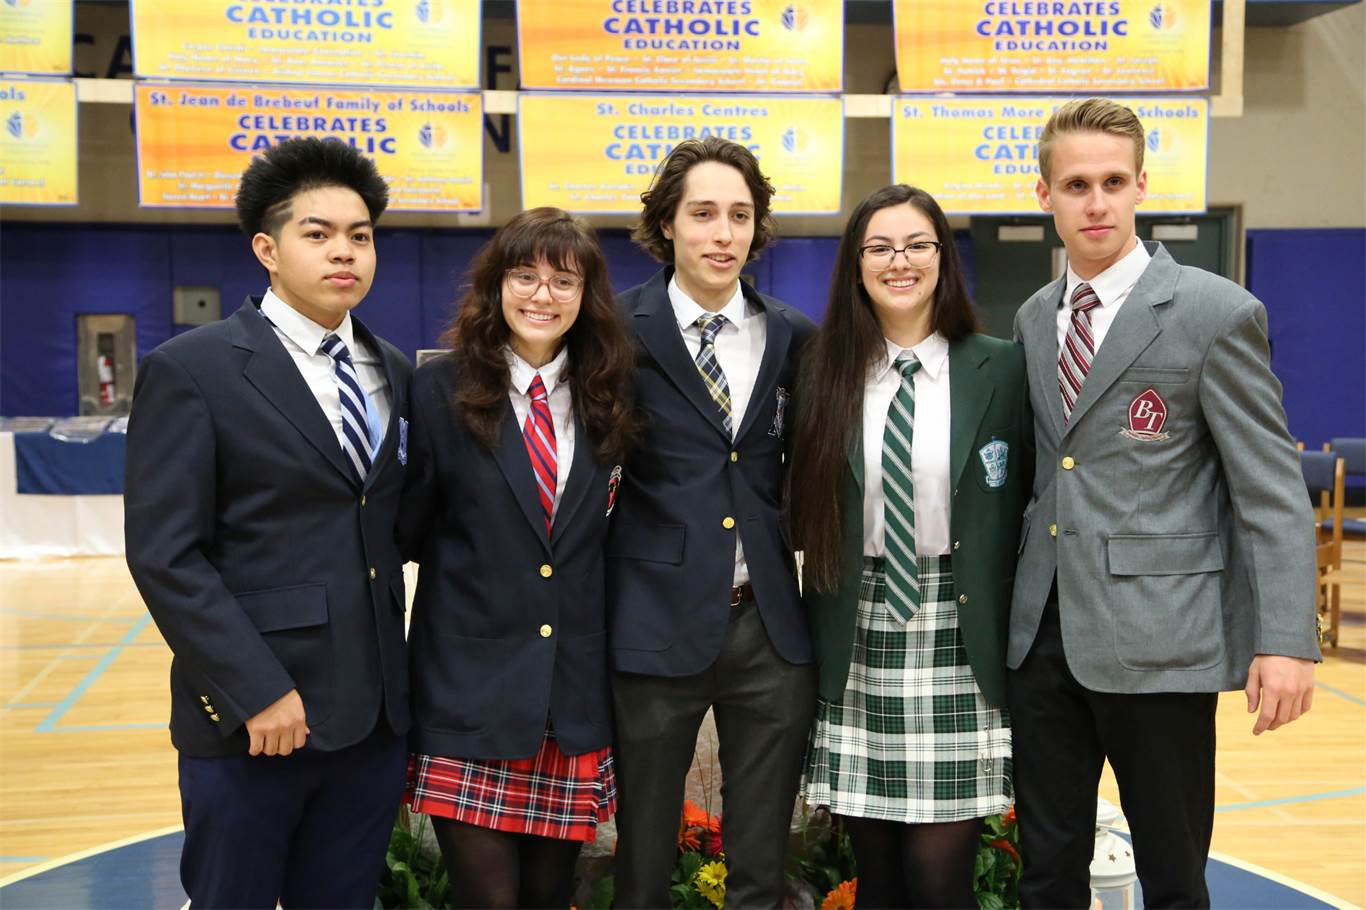 Student Council Presidents from Cathedral, Cardinal Newamn, St. Mary, Bishop Ryan and Bishop Tonnos attend the Catholic Education Week Opening Mass at Cathedral High School on May 7. Photo by Jenna Madalena.